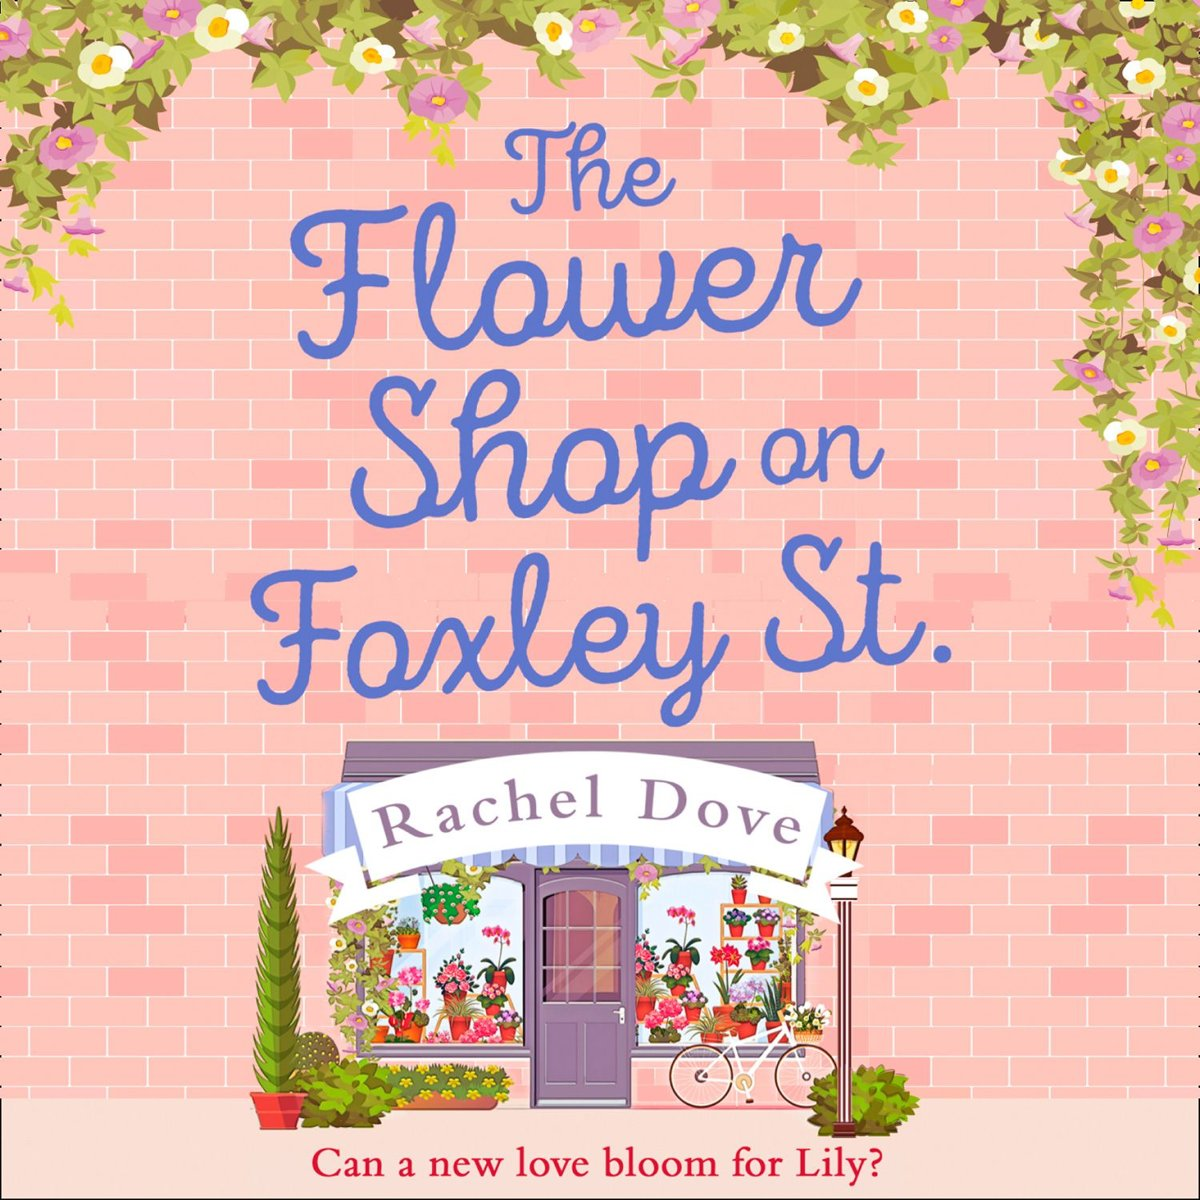 The Flower Shop on Foxley Street